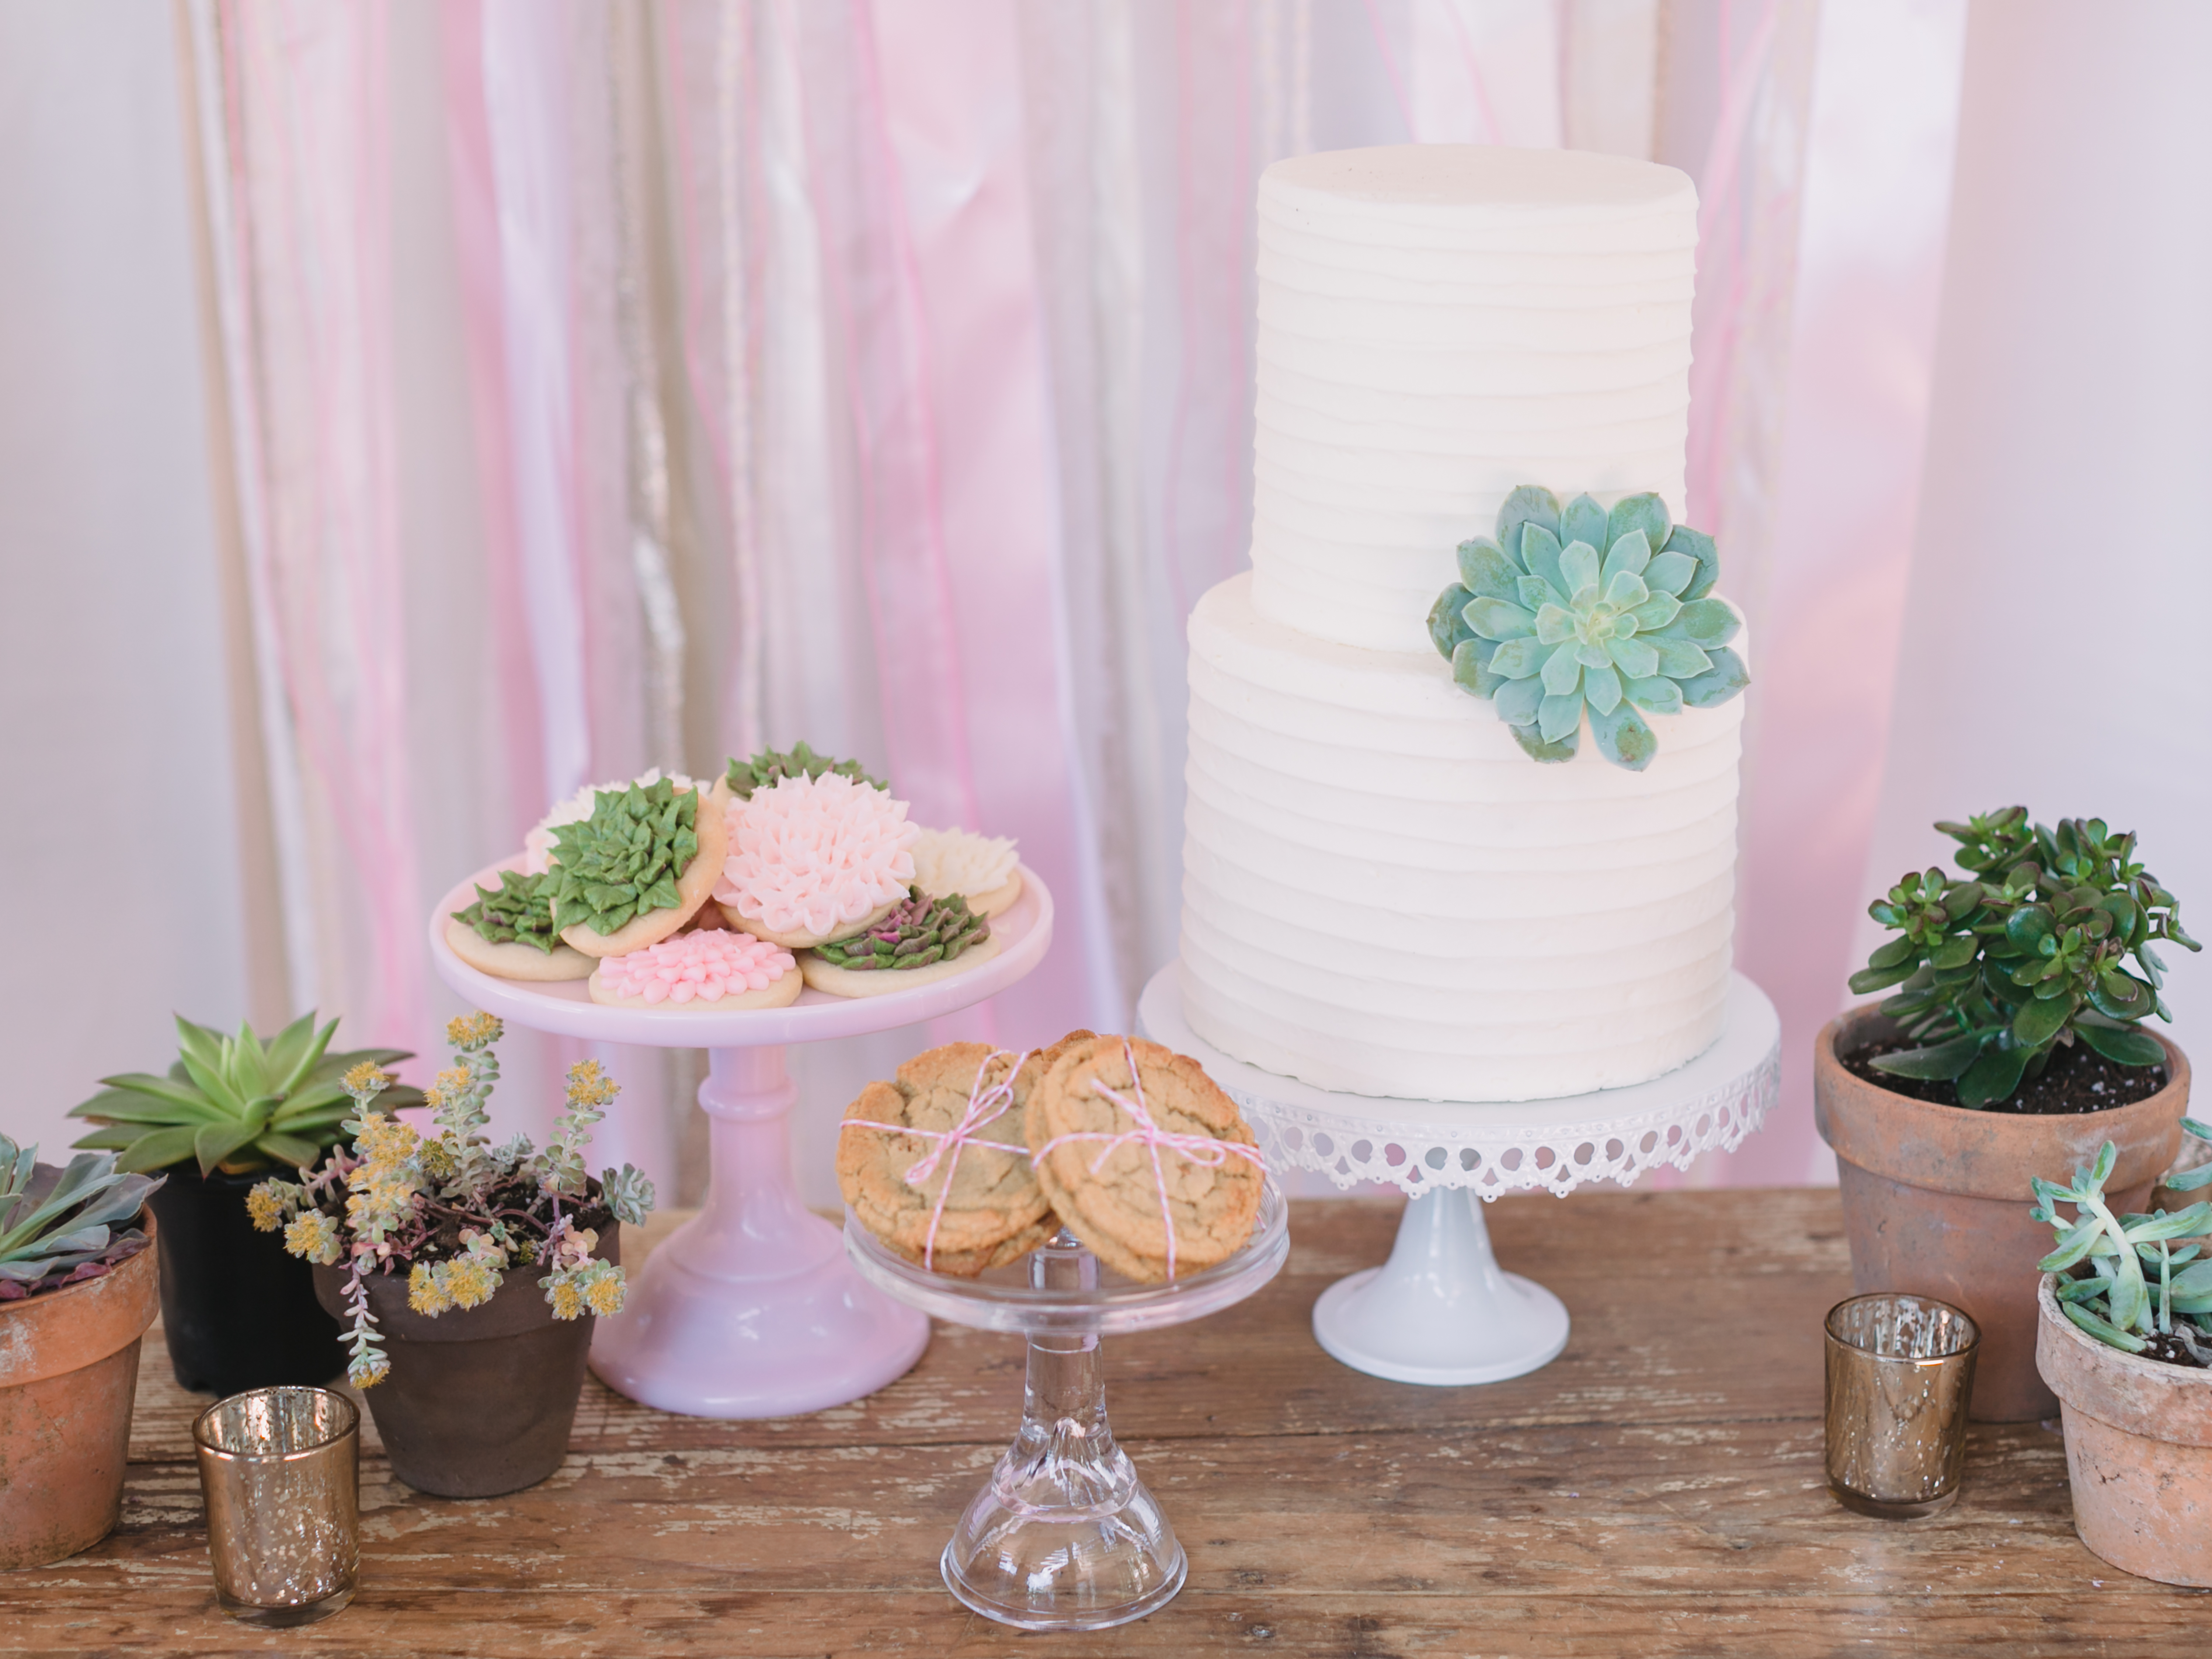 Make the Perfect Dessert Table for Your Wedding With This Easy DIY